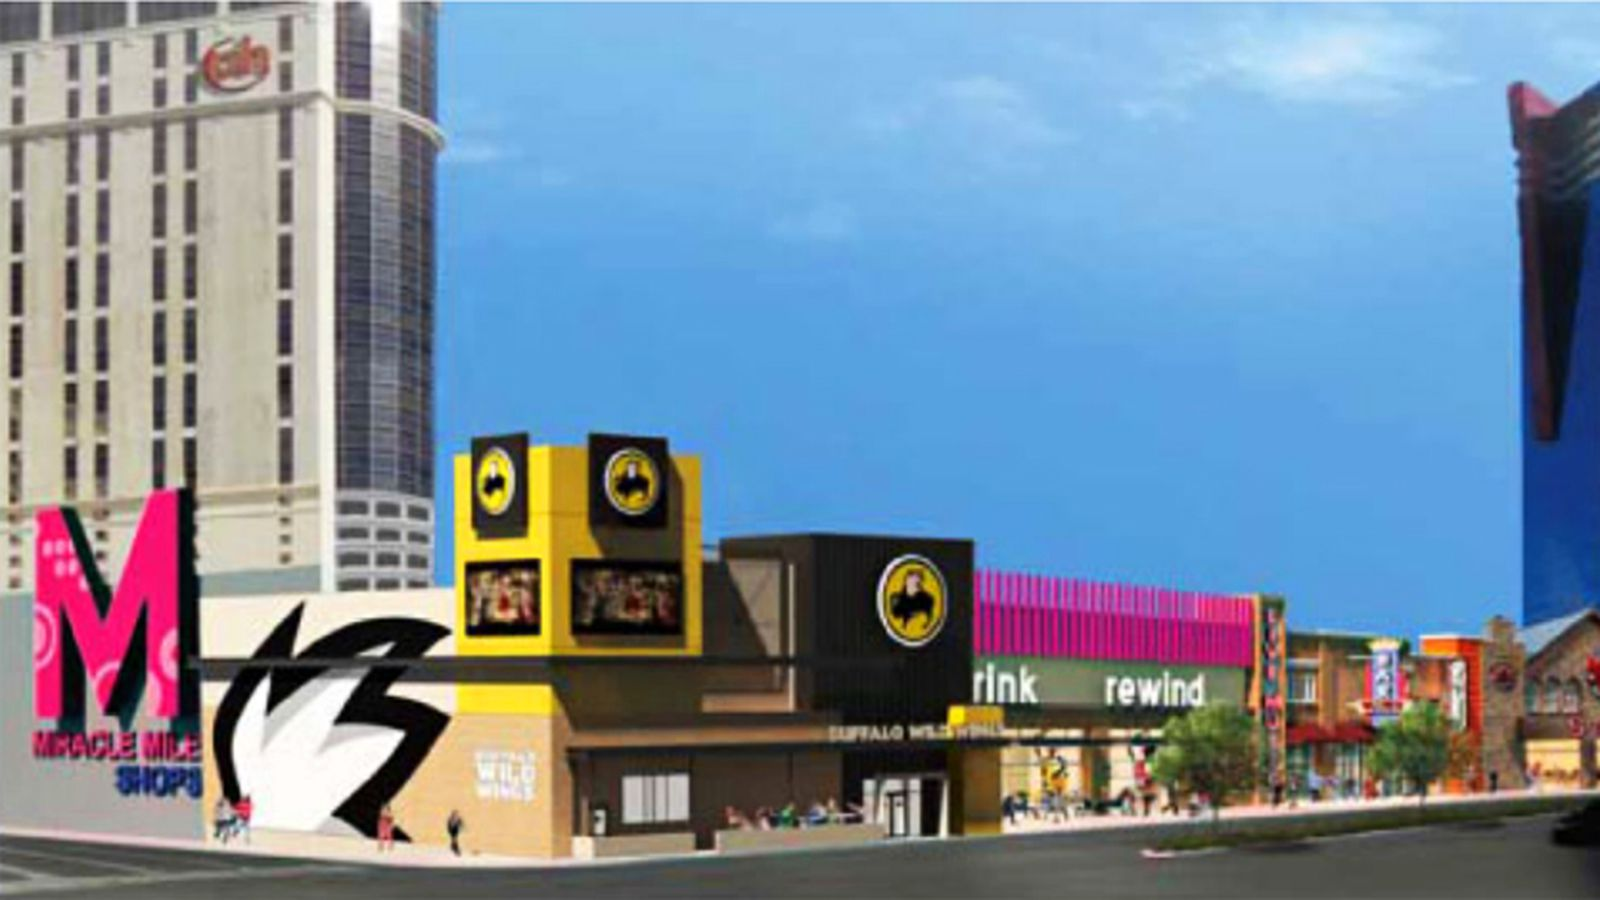 Texas Land Amp Cattle Steakhouse To Miracle Mile Shops